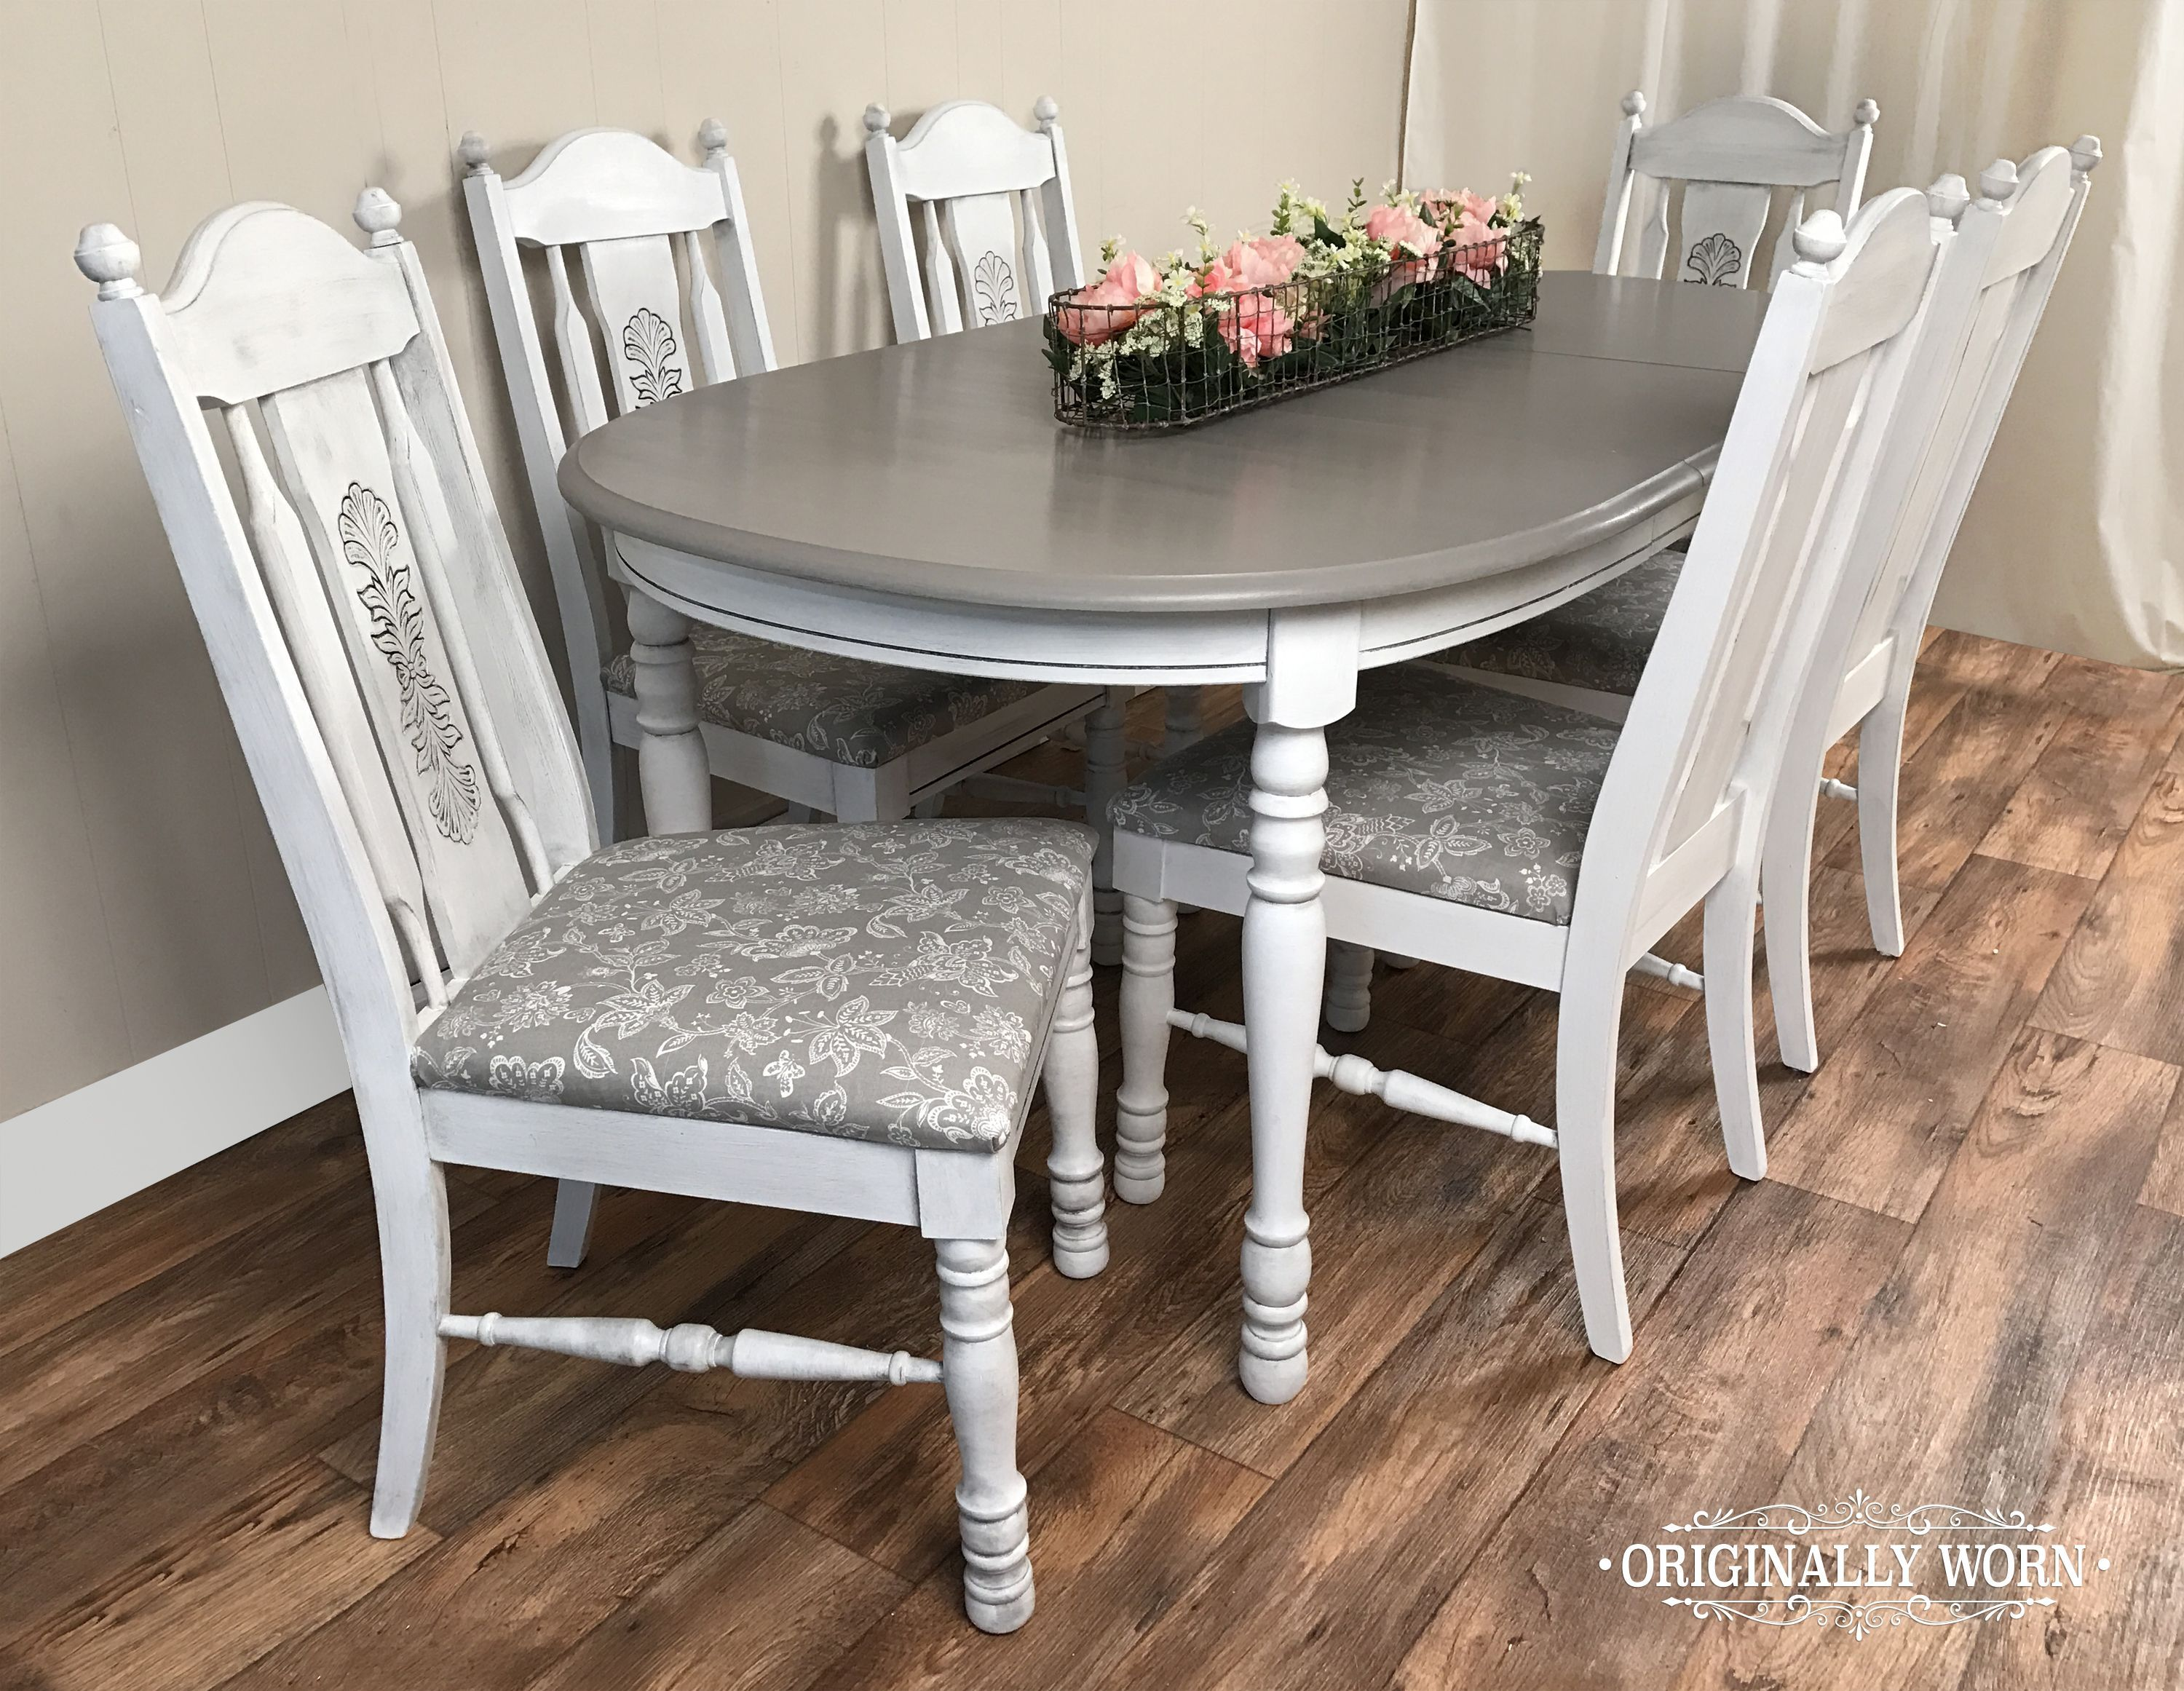 7 Piece Oval Dining Set In Annie Sloan Chalk Paint Pure White And French Linen Black Wax By Originally Worn